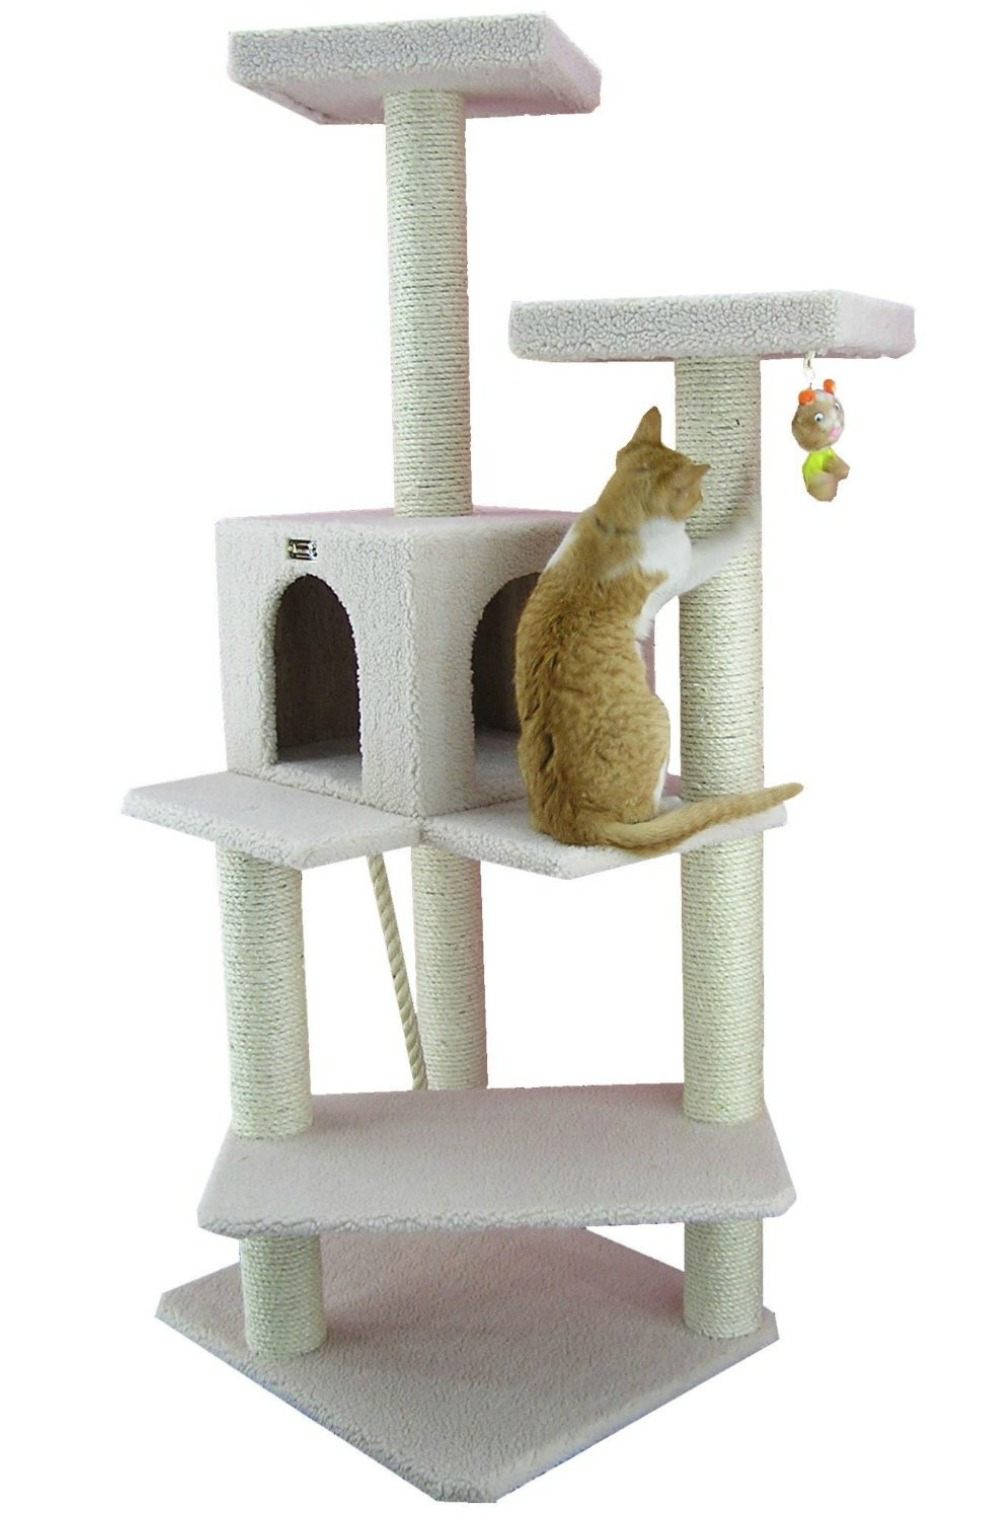 Armarkat Cat Tree Furniture 50 in. to 60 in. High